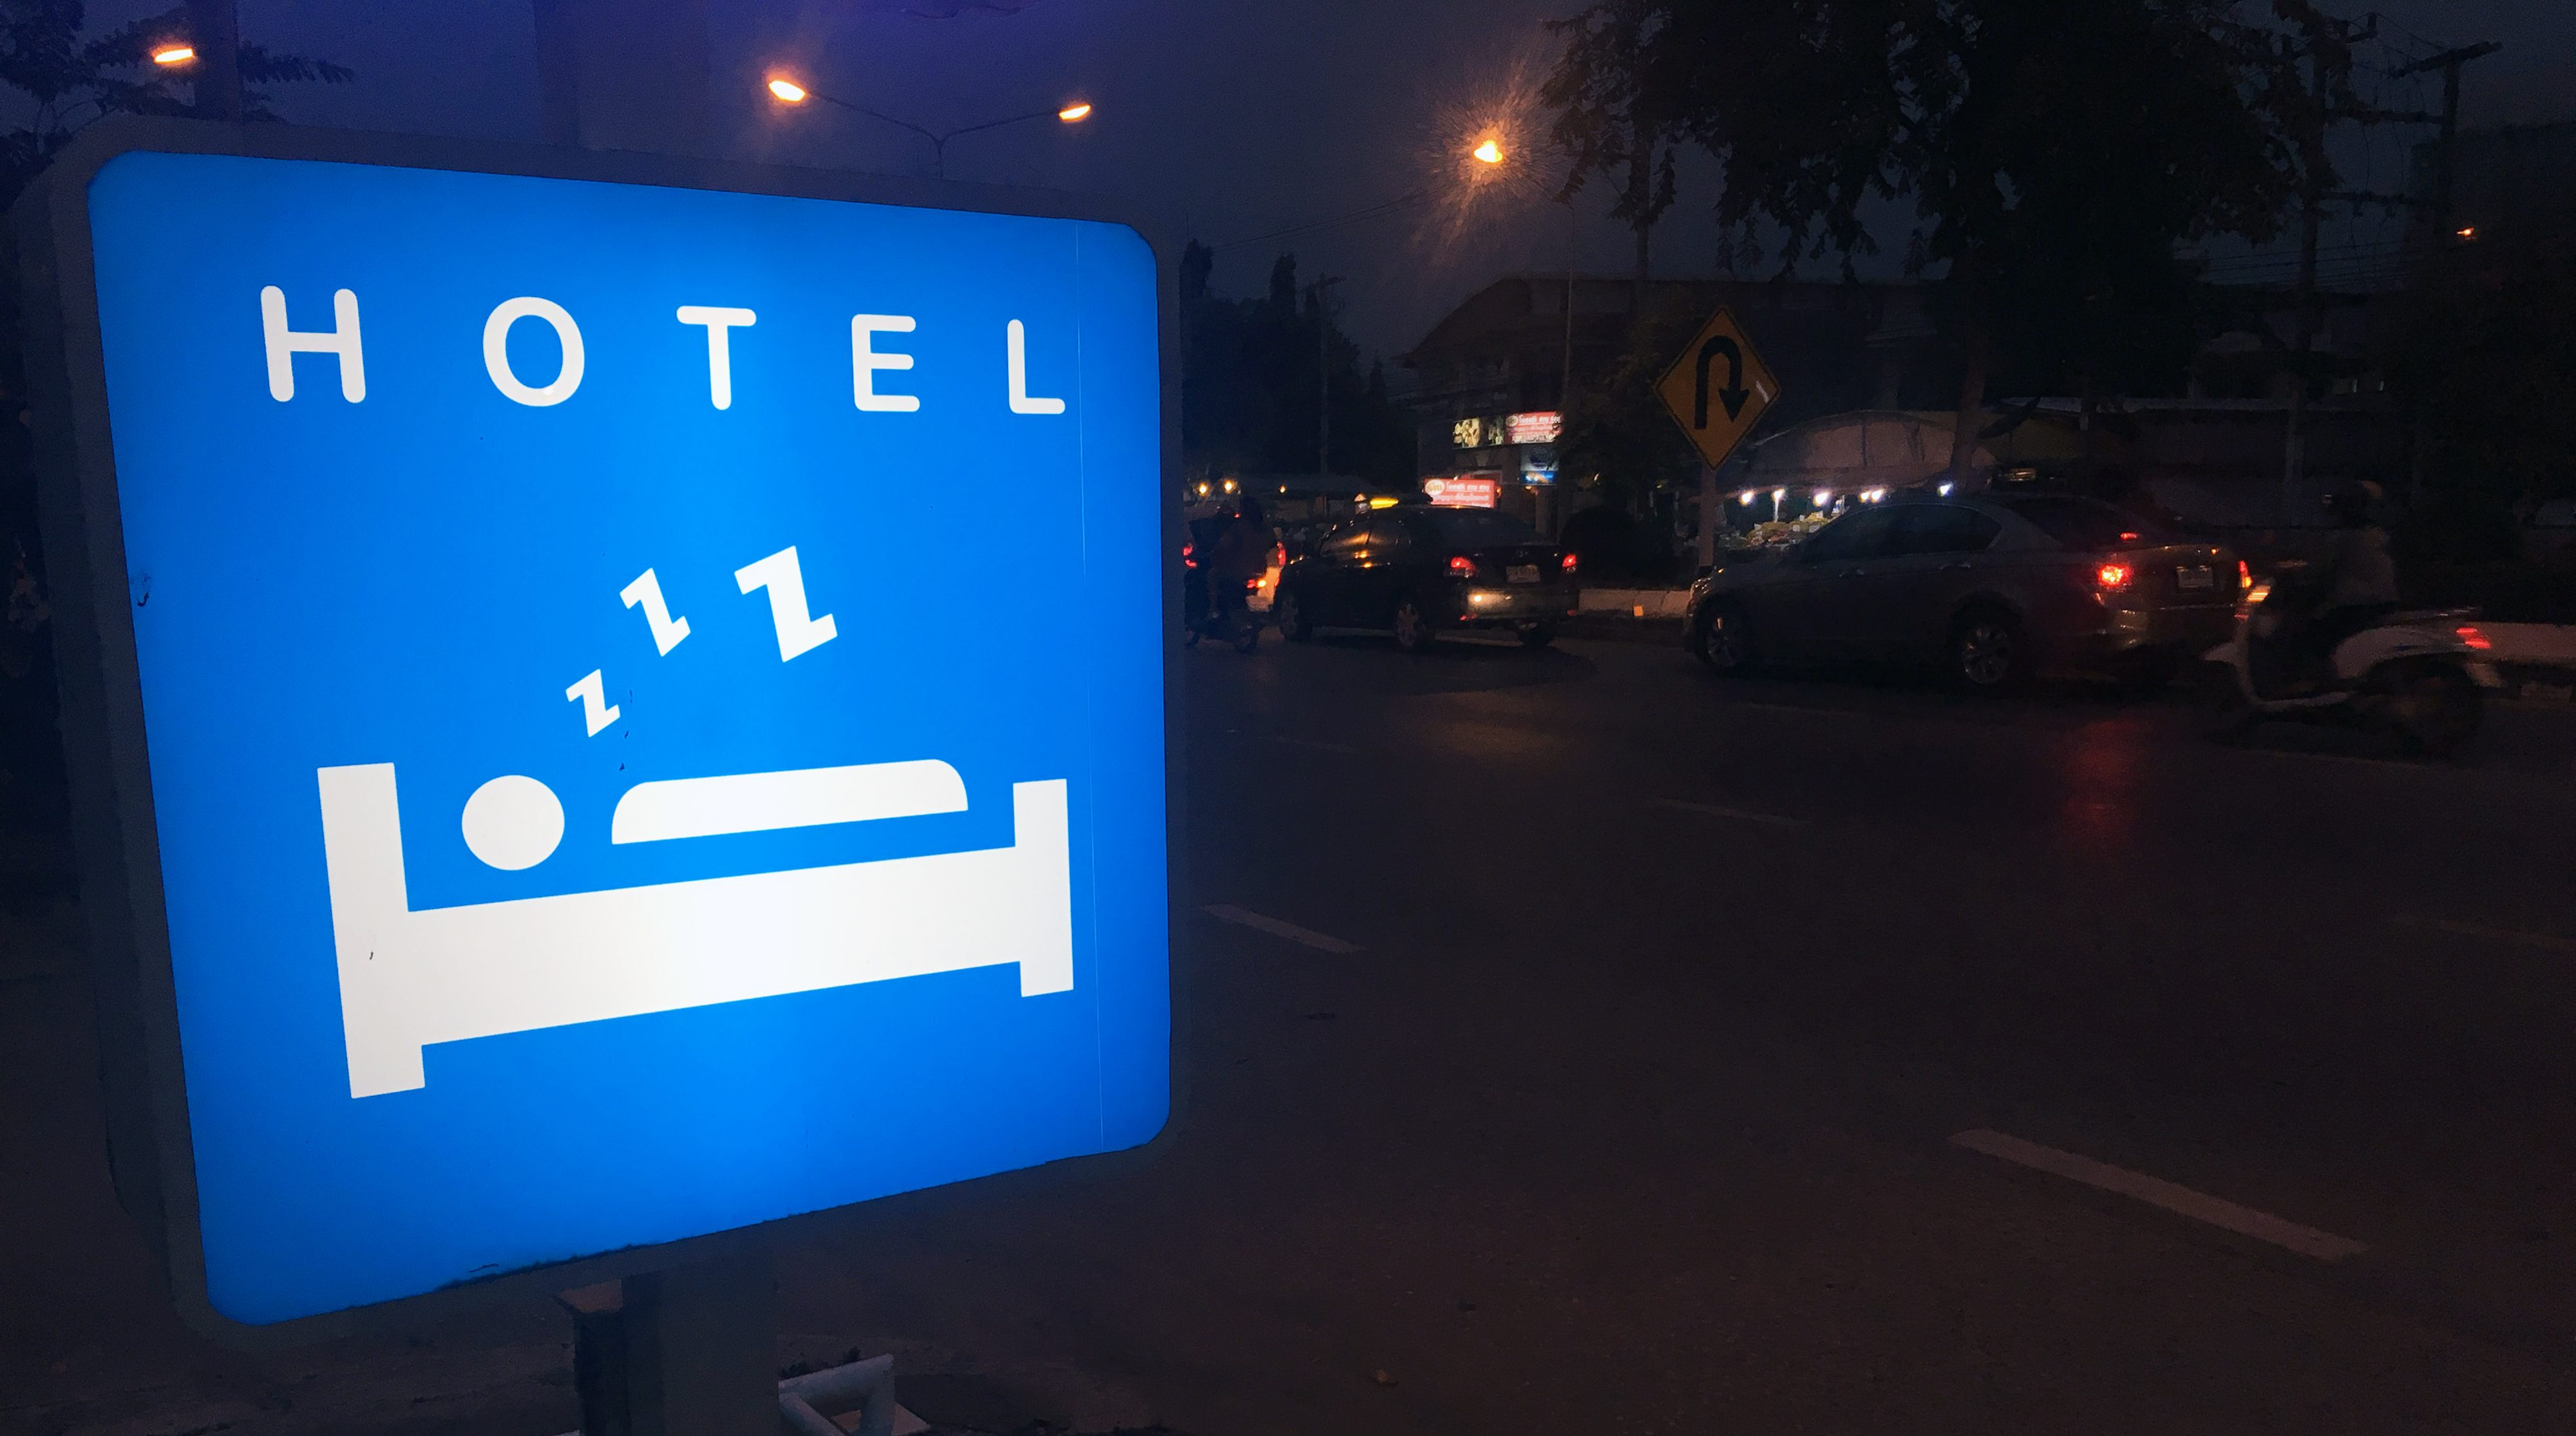 Led Sign Lighting In 9 Easy Steps Super Bright Leds Channel Lettering Wiring Diagram With Modules Hotel